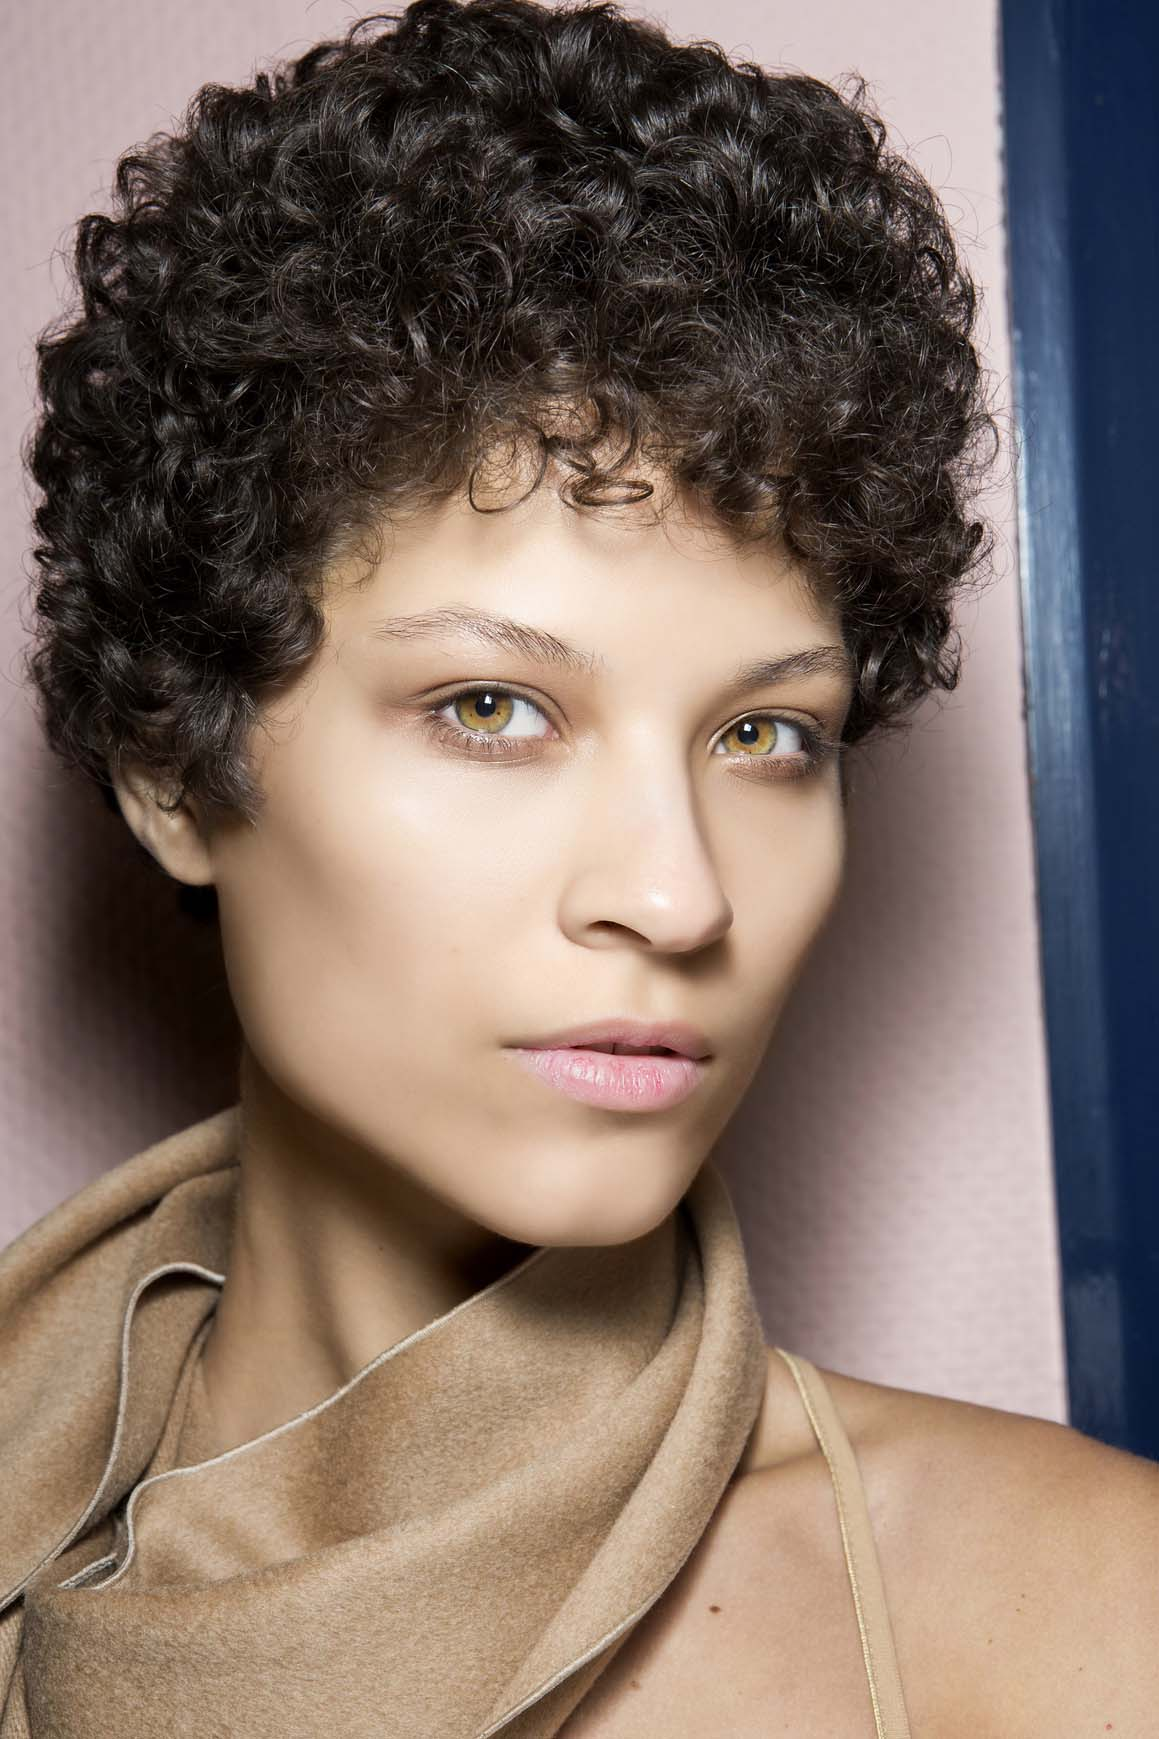 Easy Hairstyles for Short Hair: 7 Looks We Love